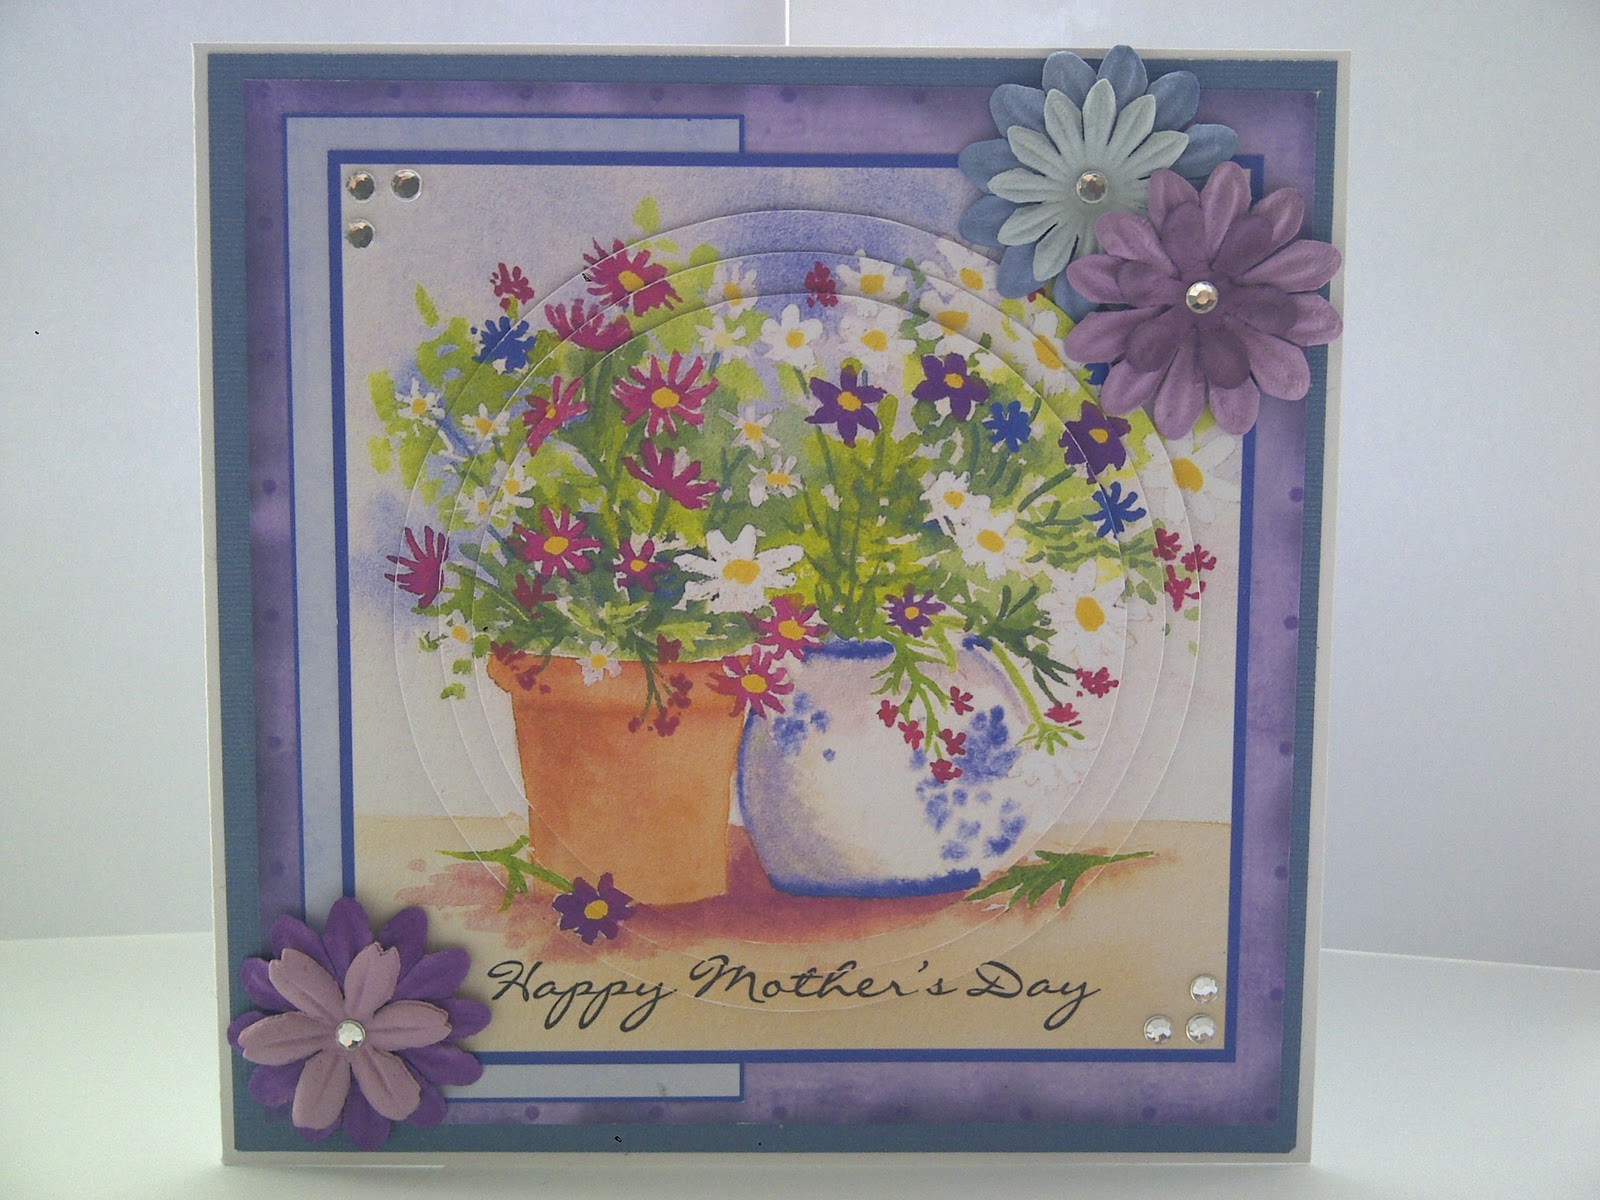 Happy Mothers Day Card Craft Cute Crafts To Make For Mother Day